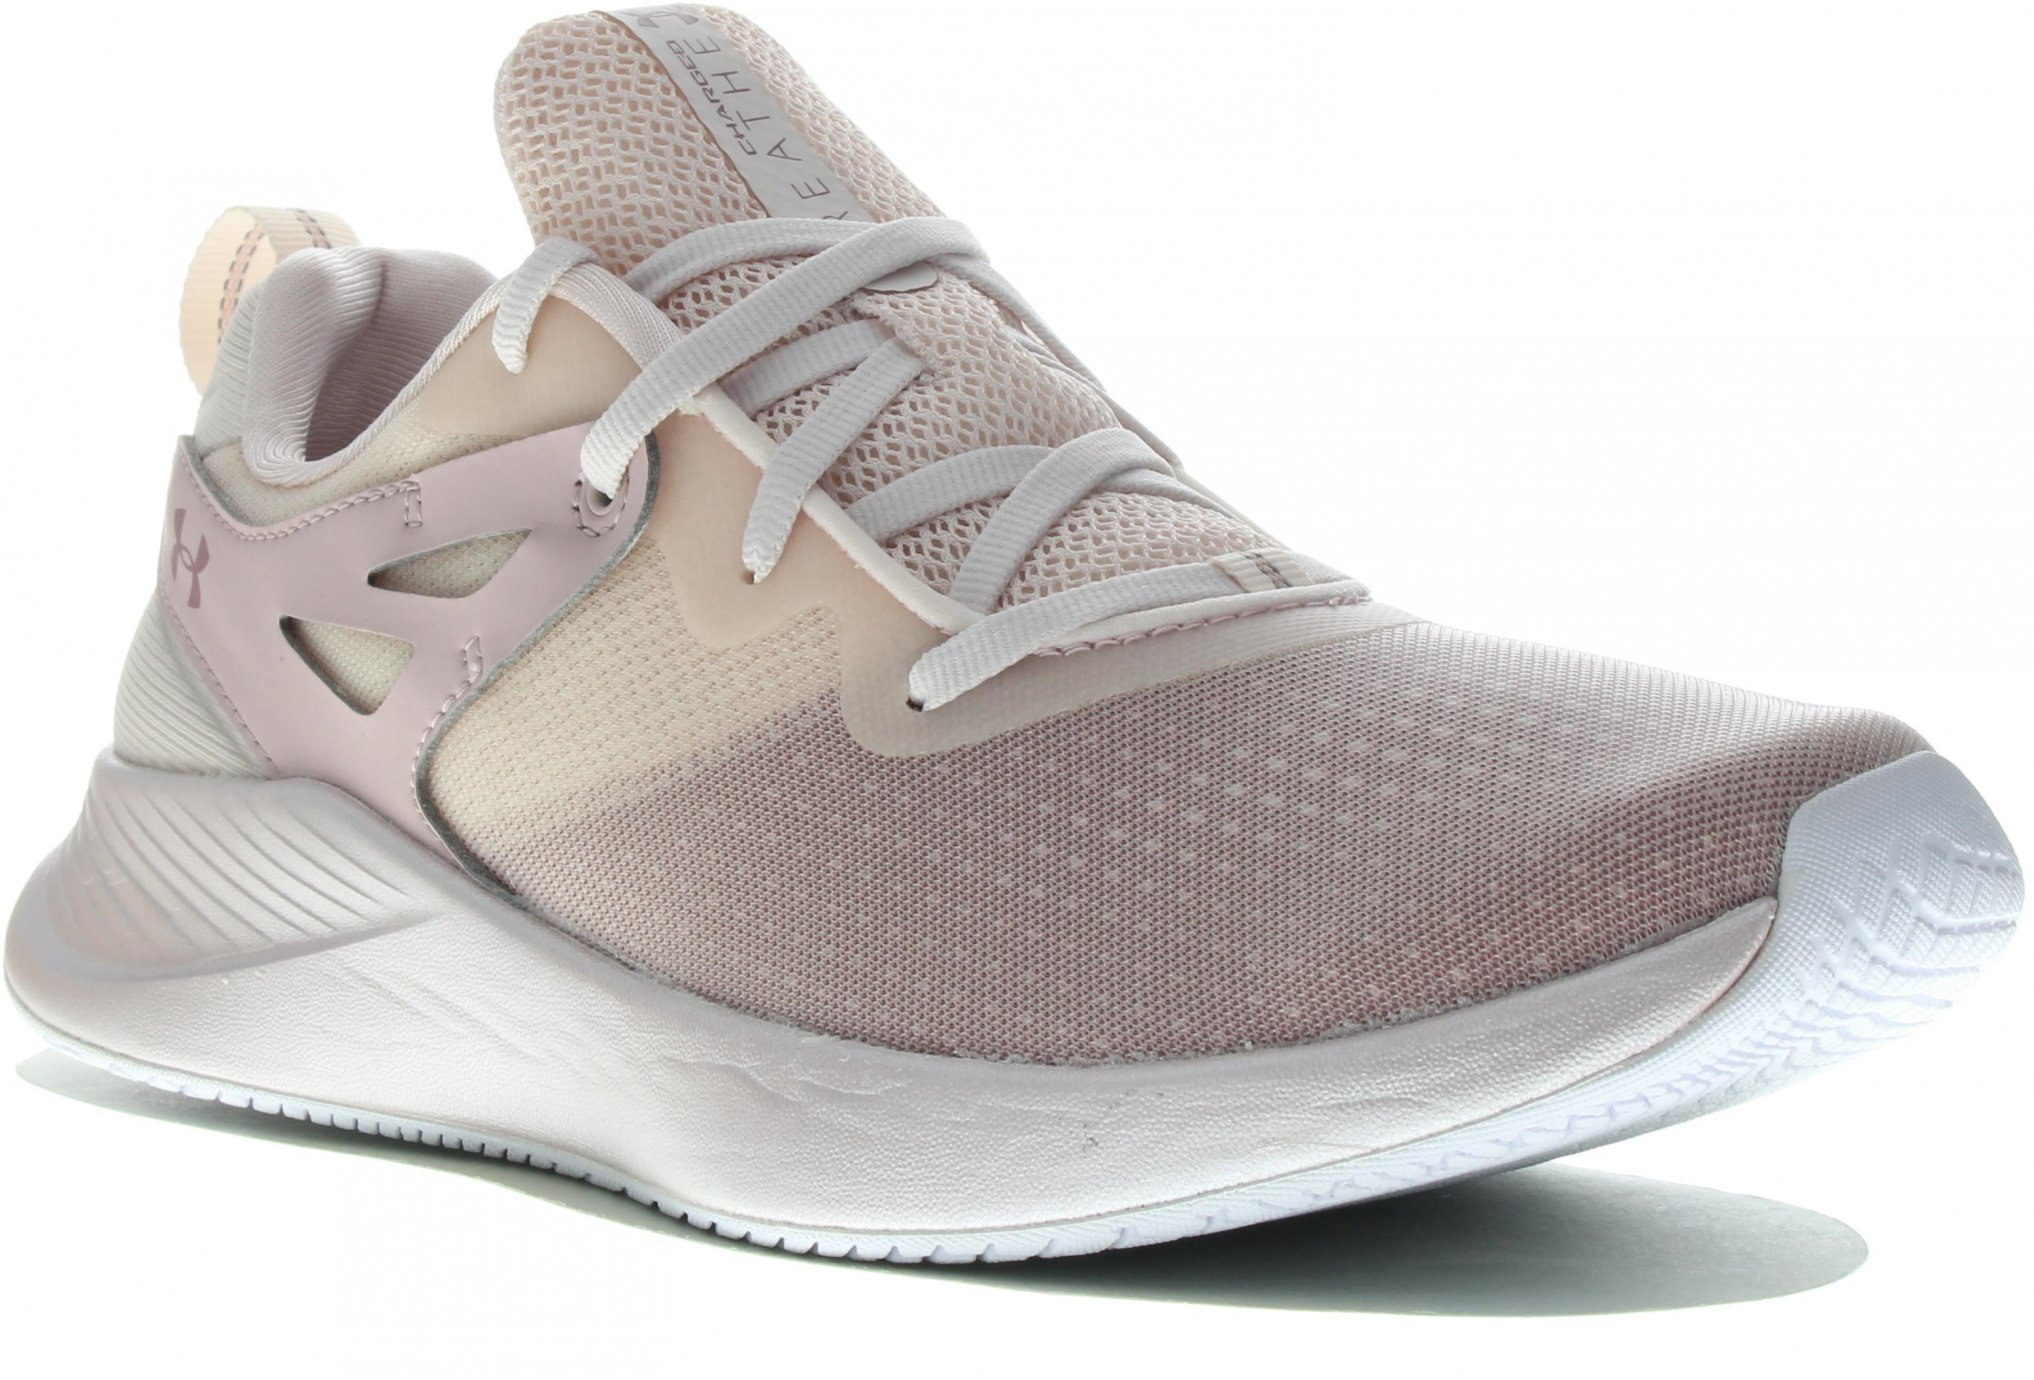 Under Armour Charged Breathe TR 2 W Diététique Chaussures femme